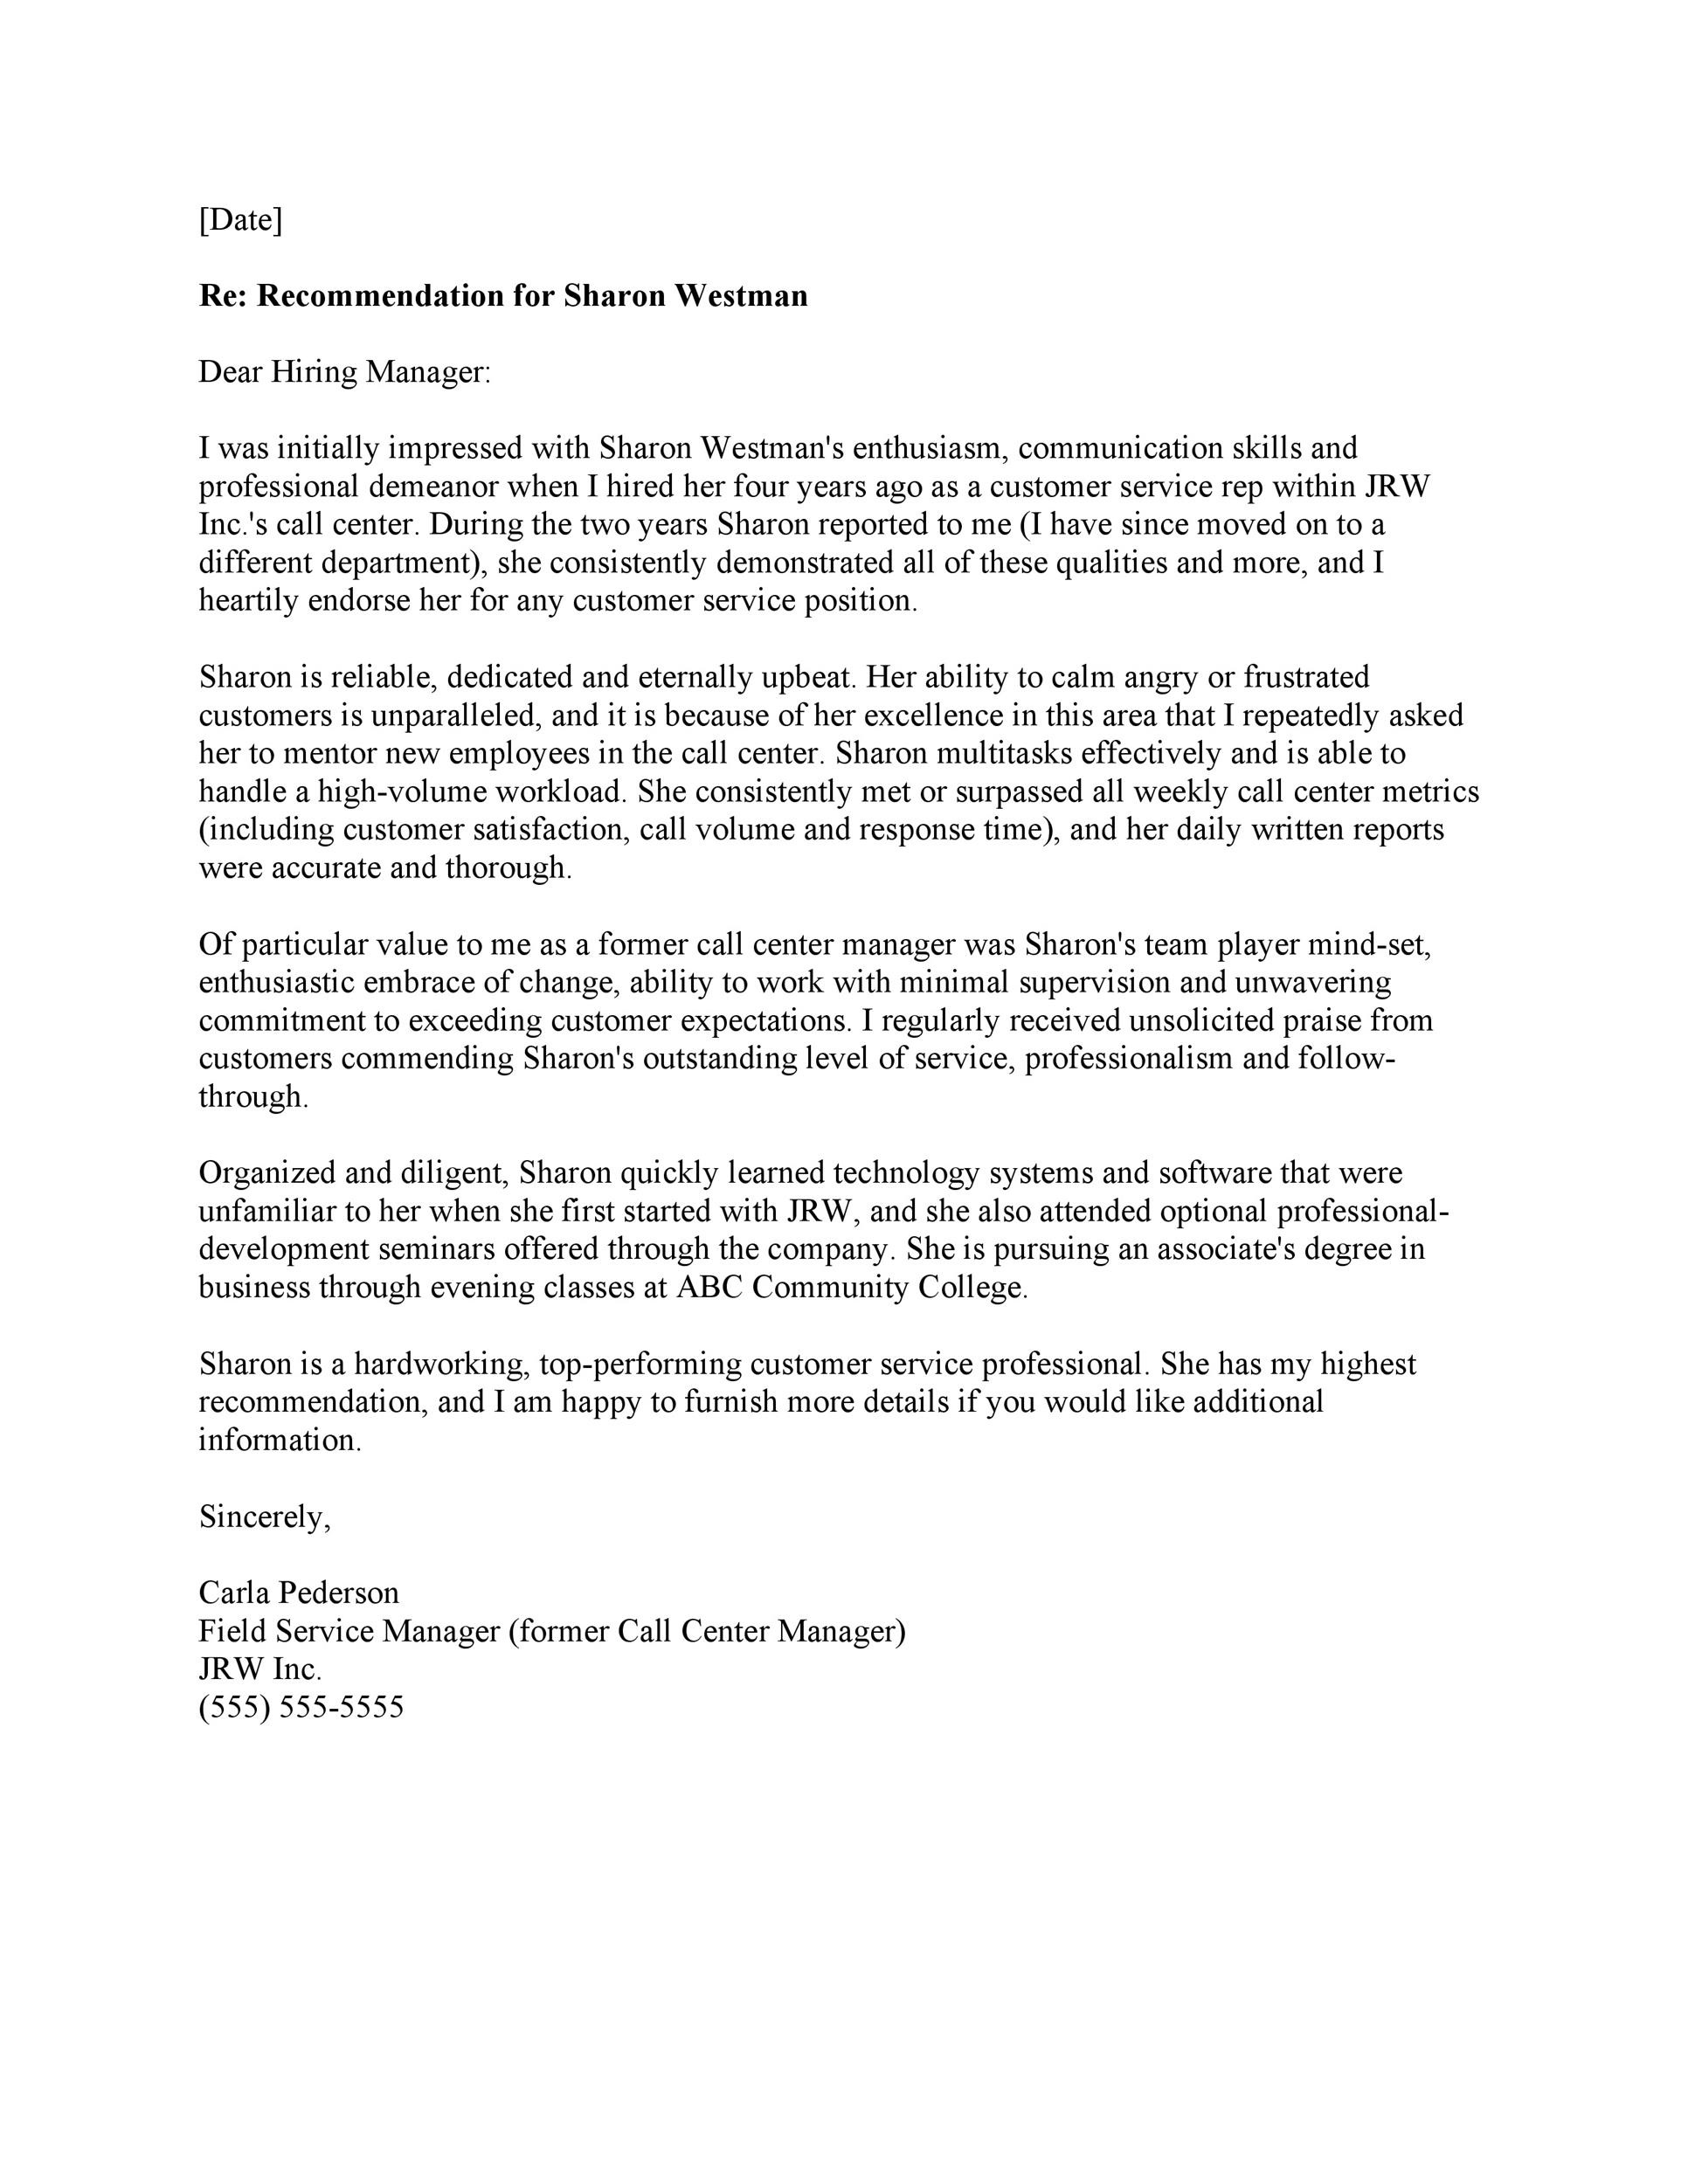 007 Fearsome Professional Reference Letter Template Inspiration  Doc Nursing FreeFull